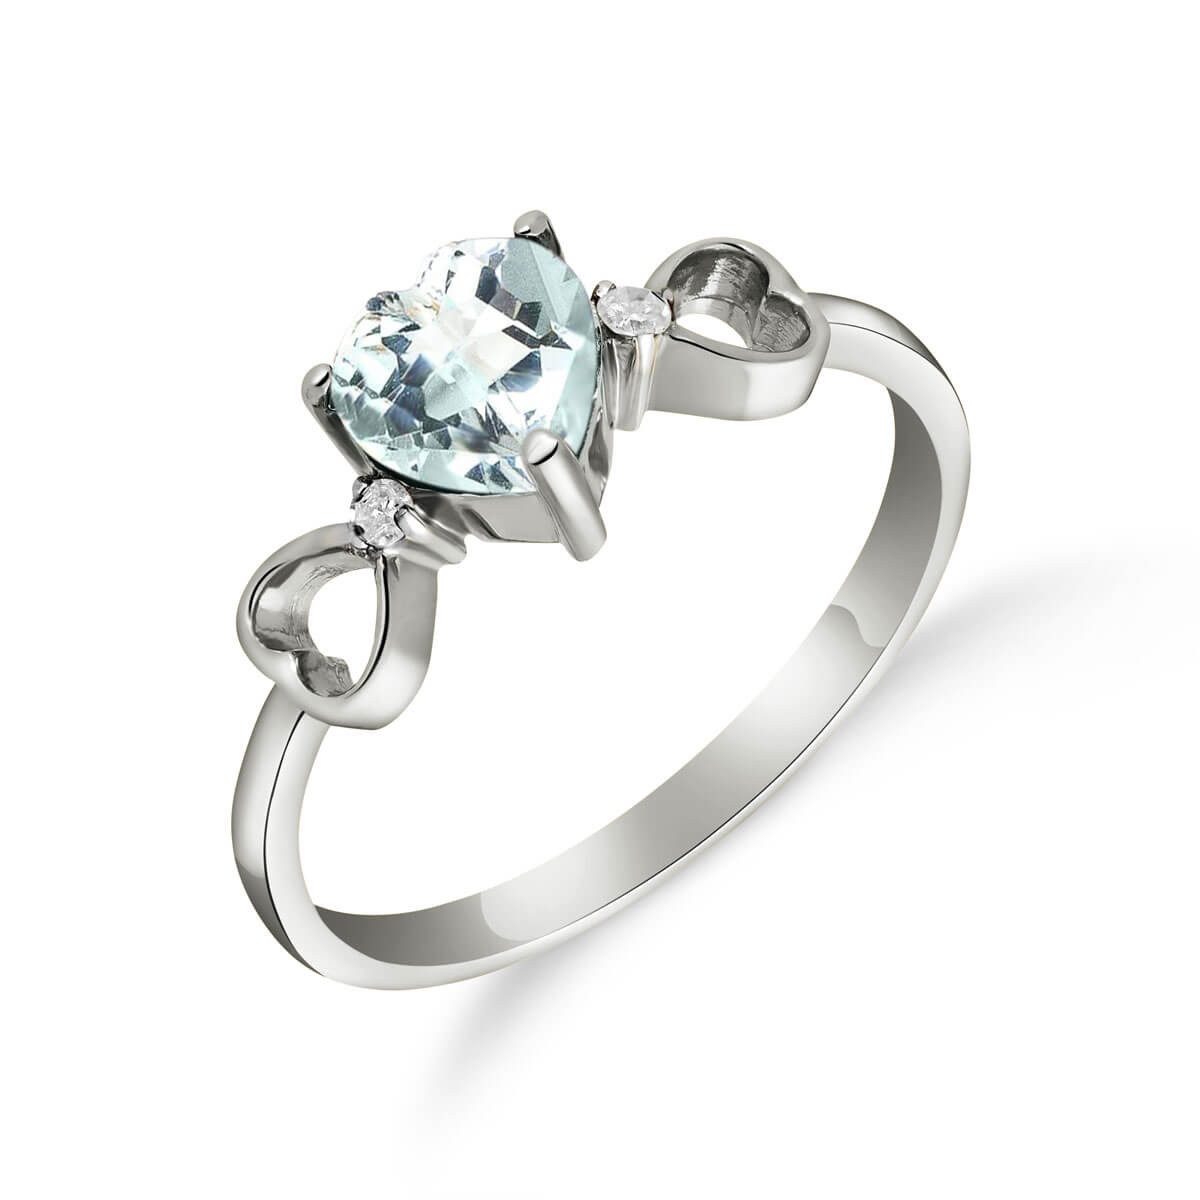 Aquamarine & Diamond Trinity Ring in 9ct White Gold